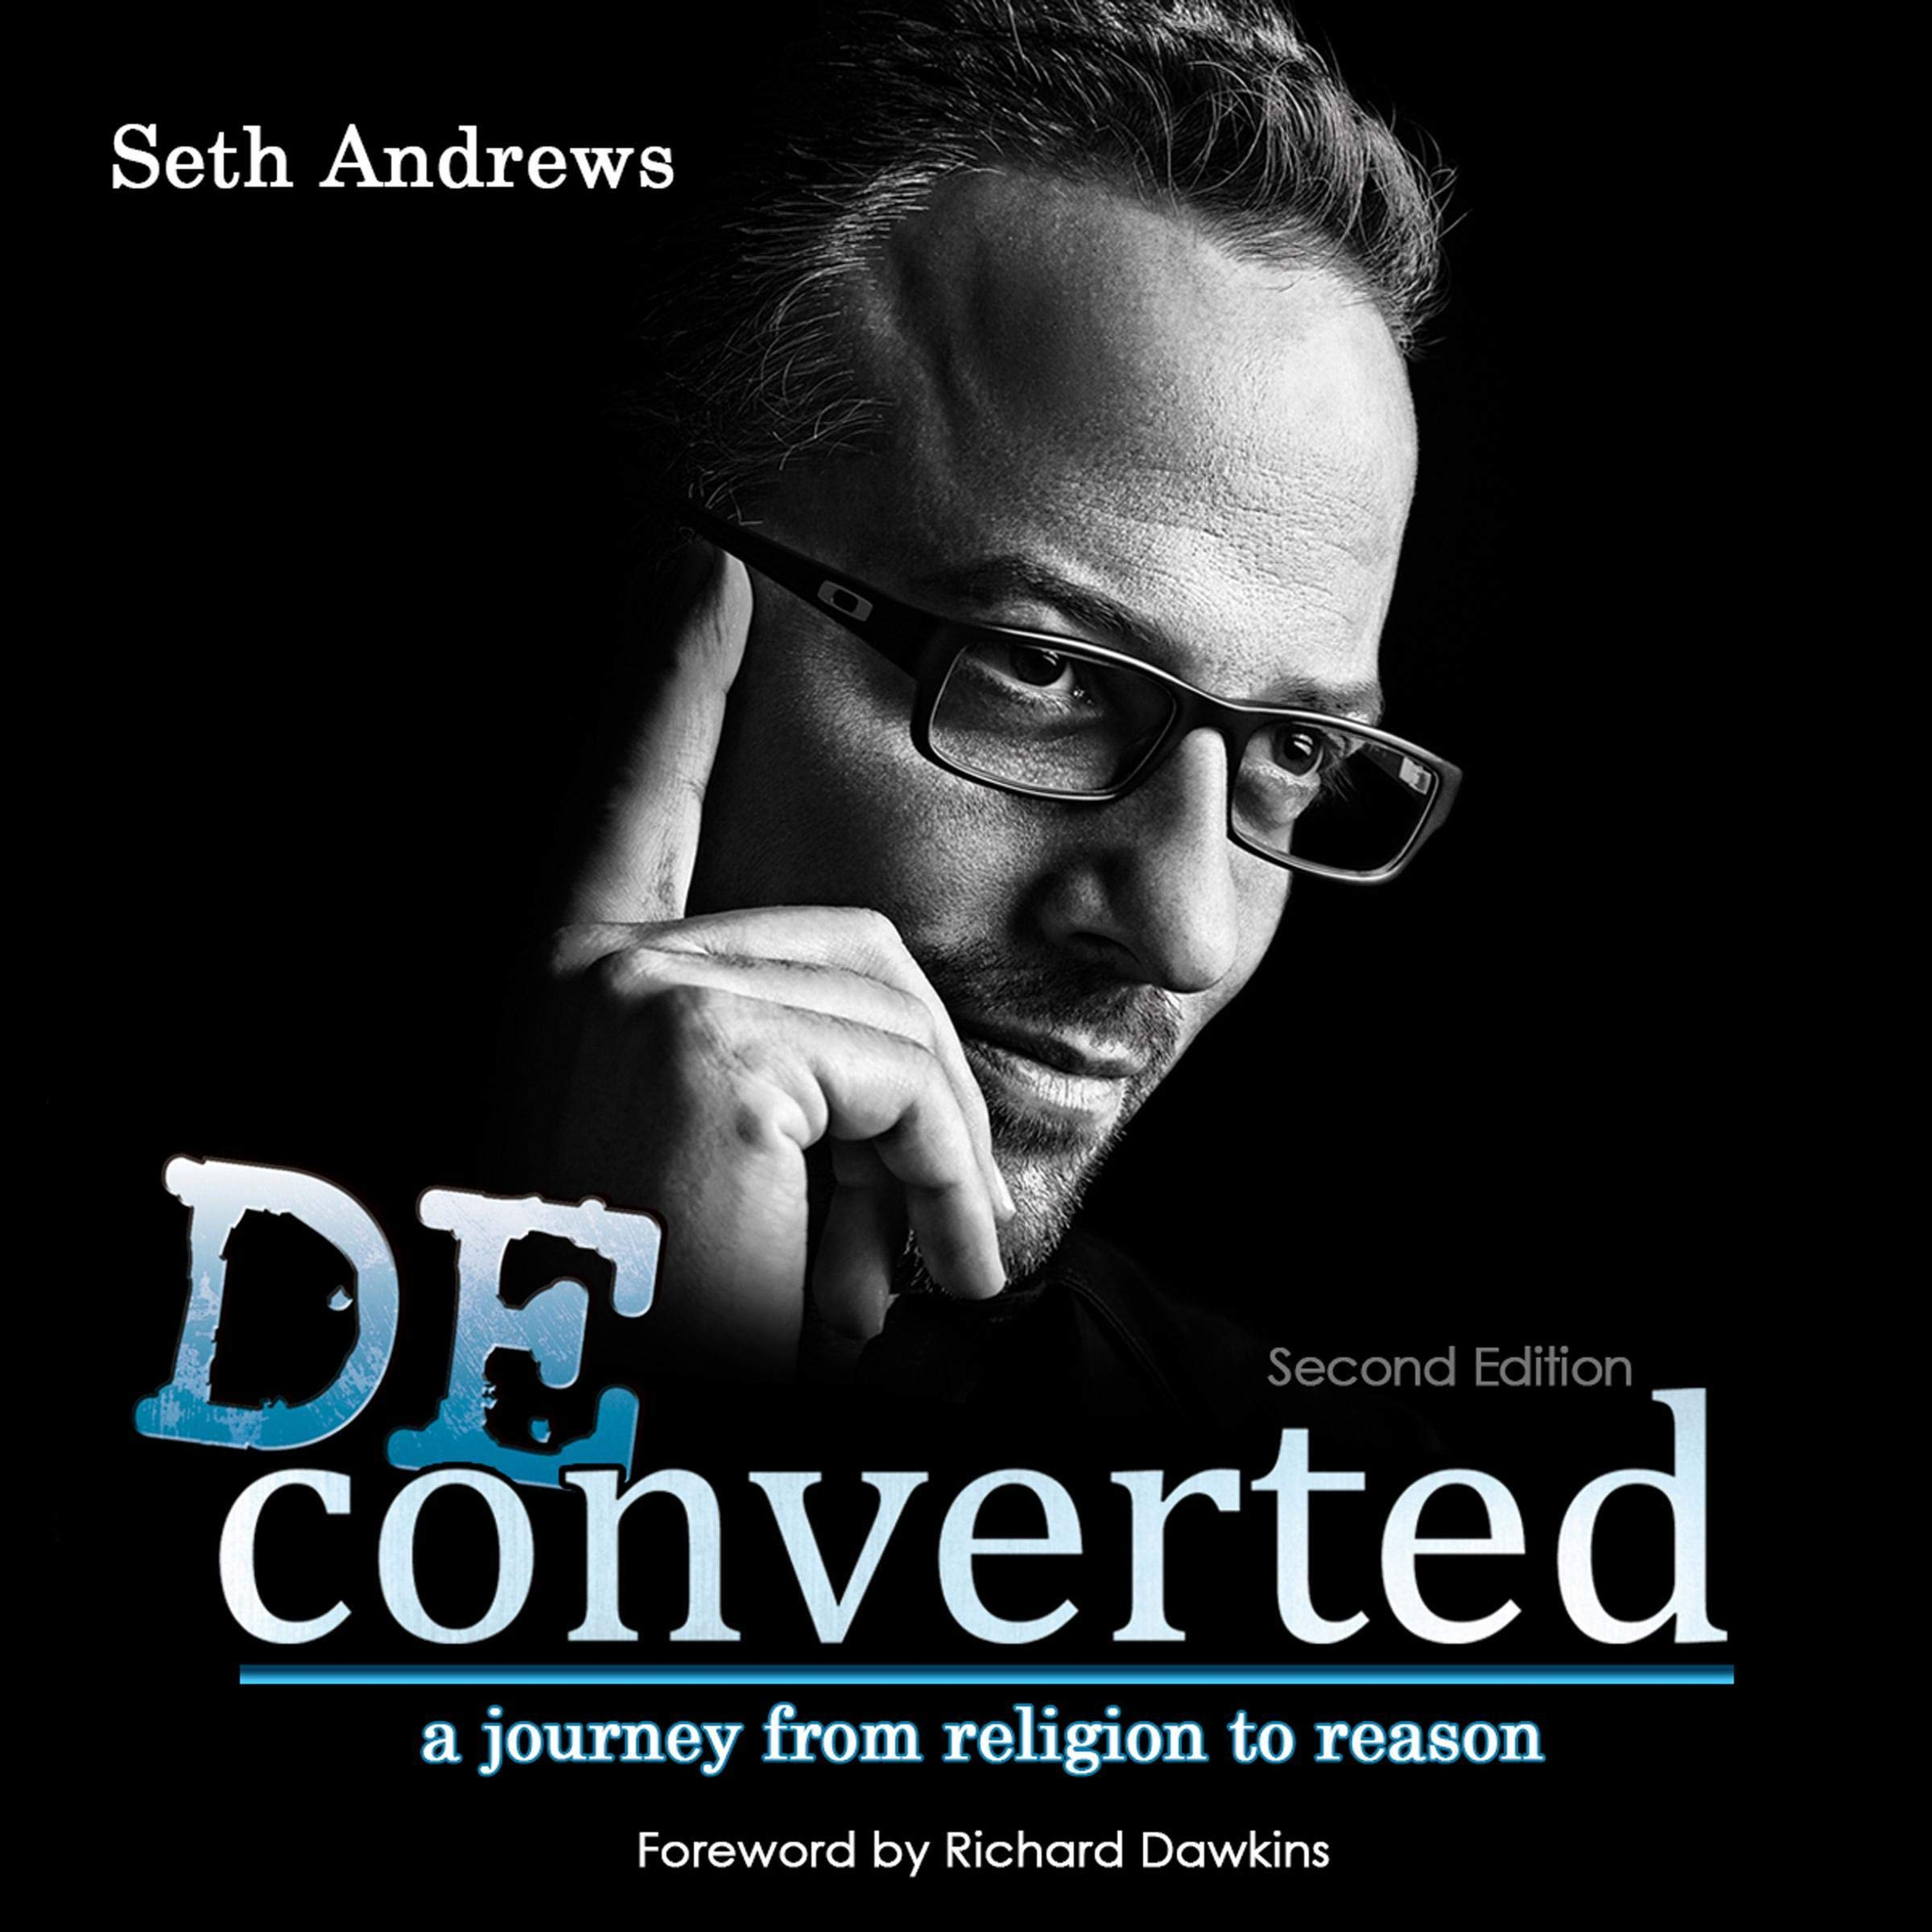 Deconverted: A Journey from Religion to Reason